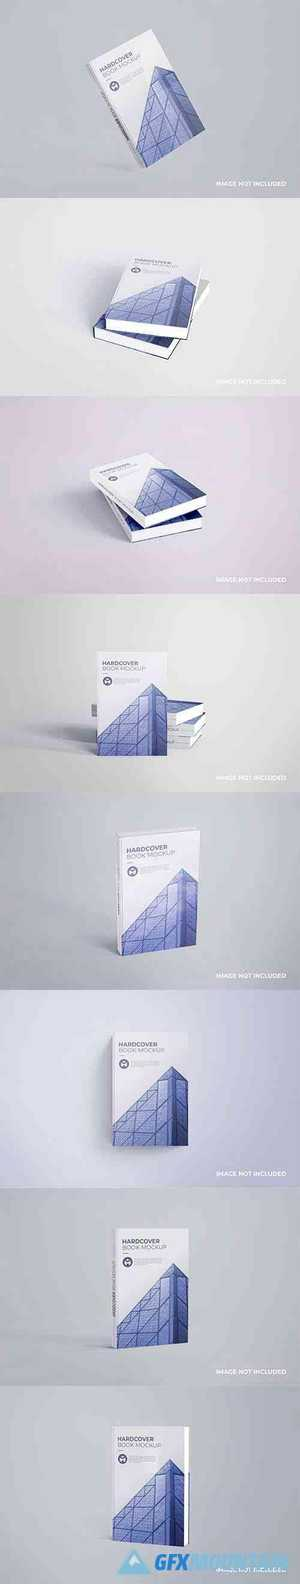 Realistic hardcover book mockup